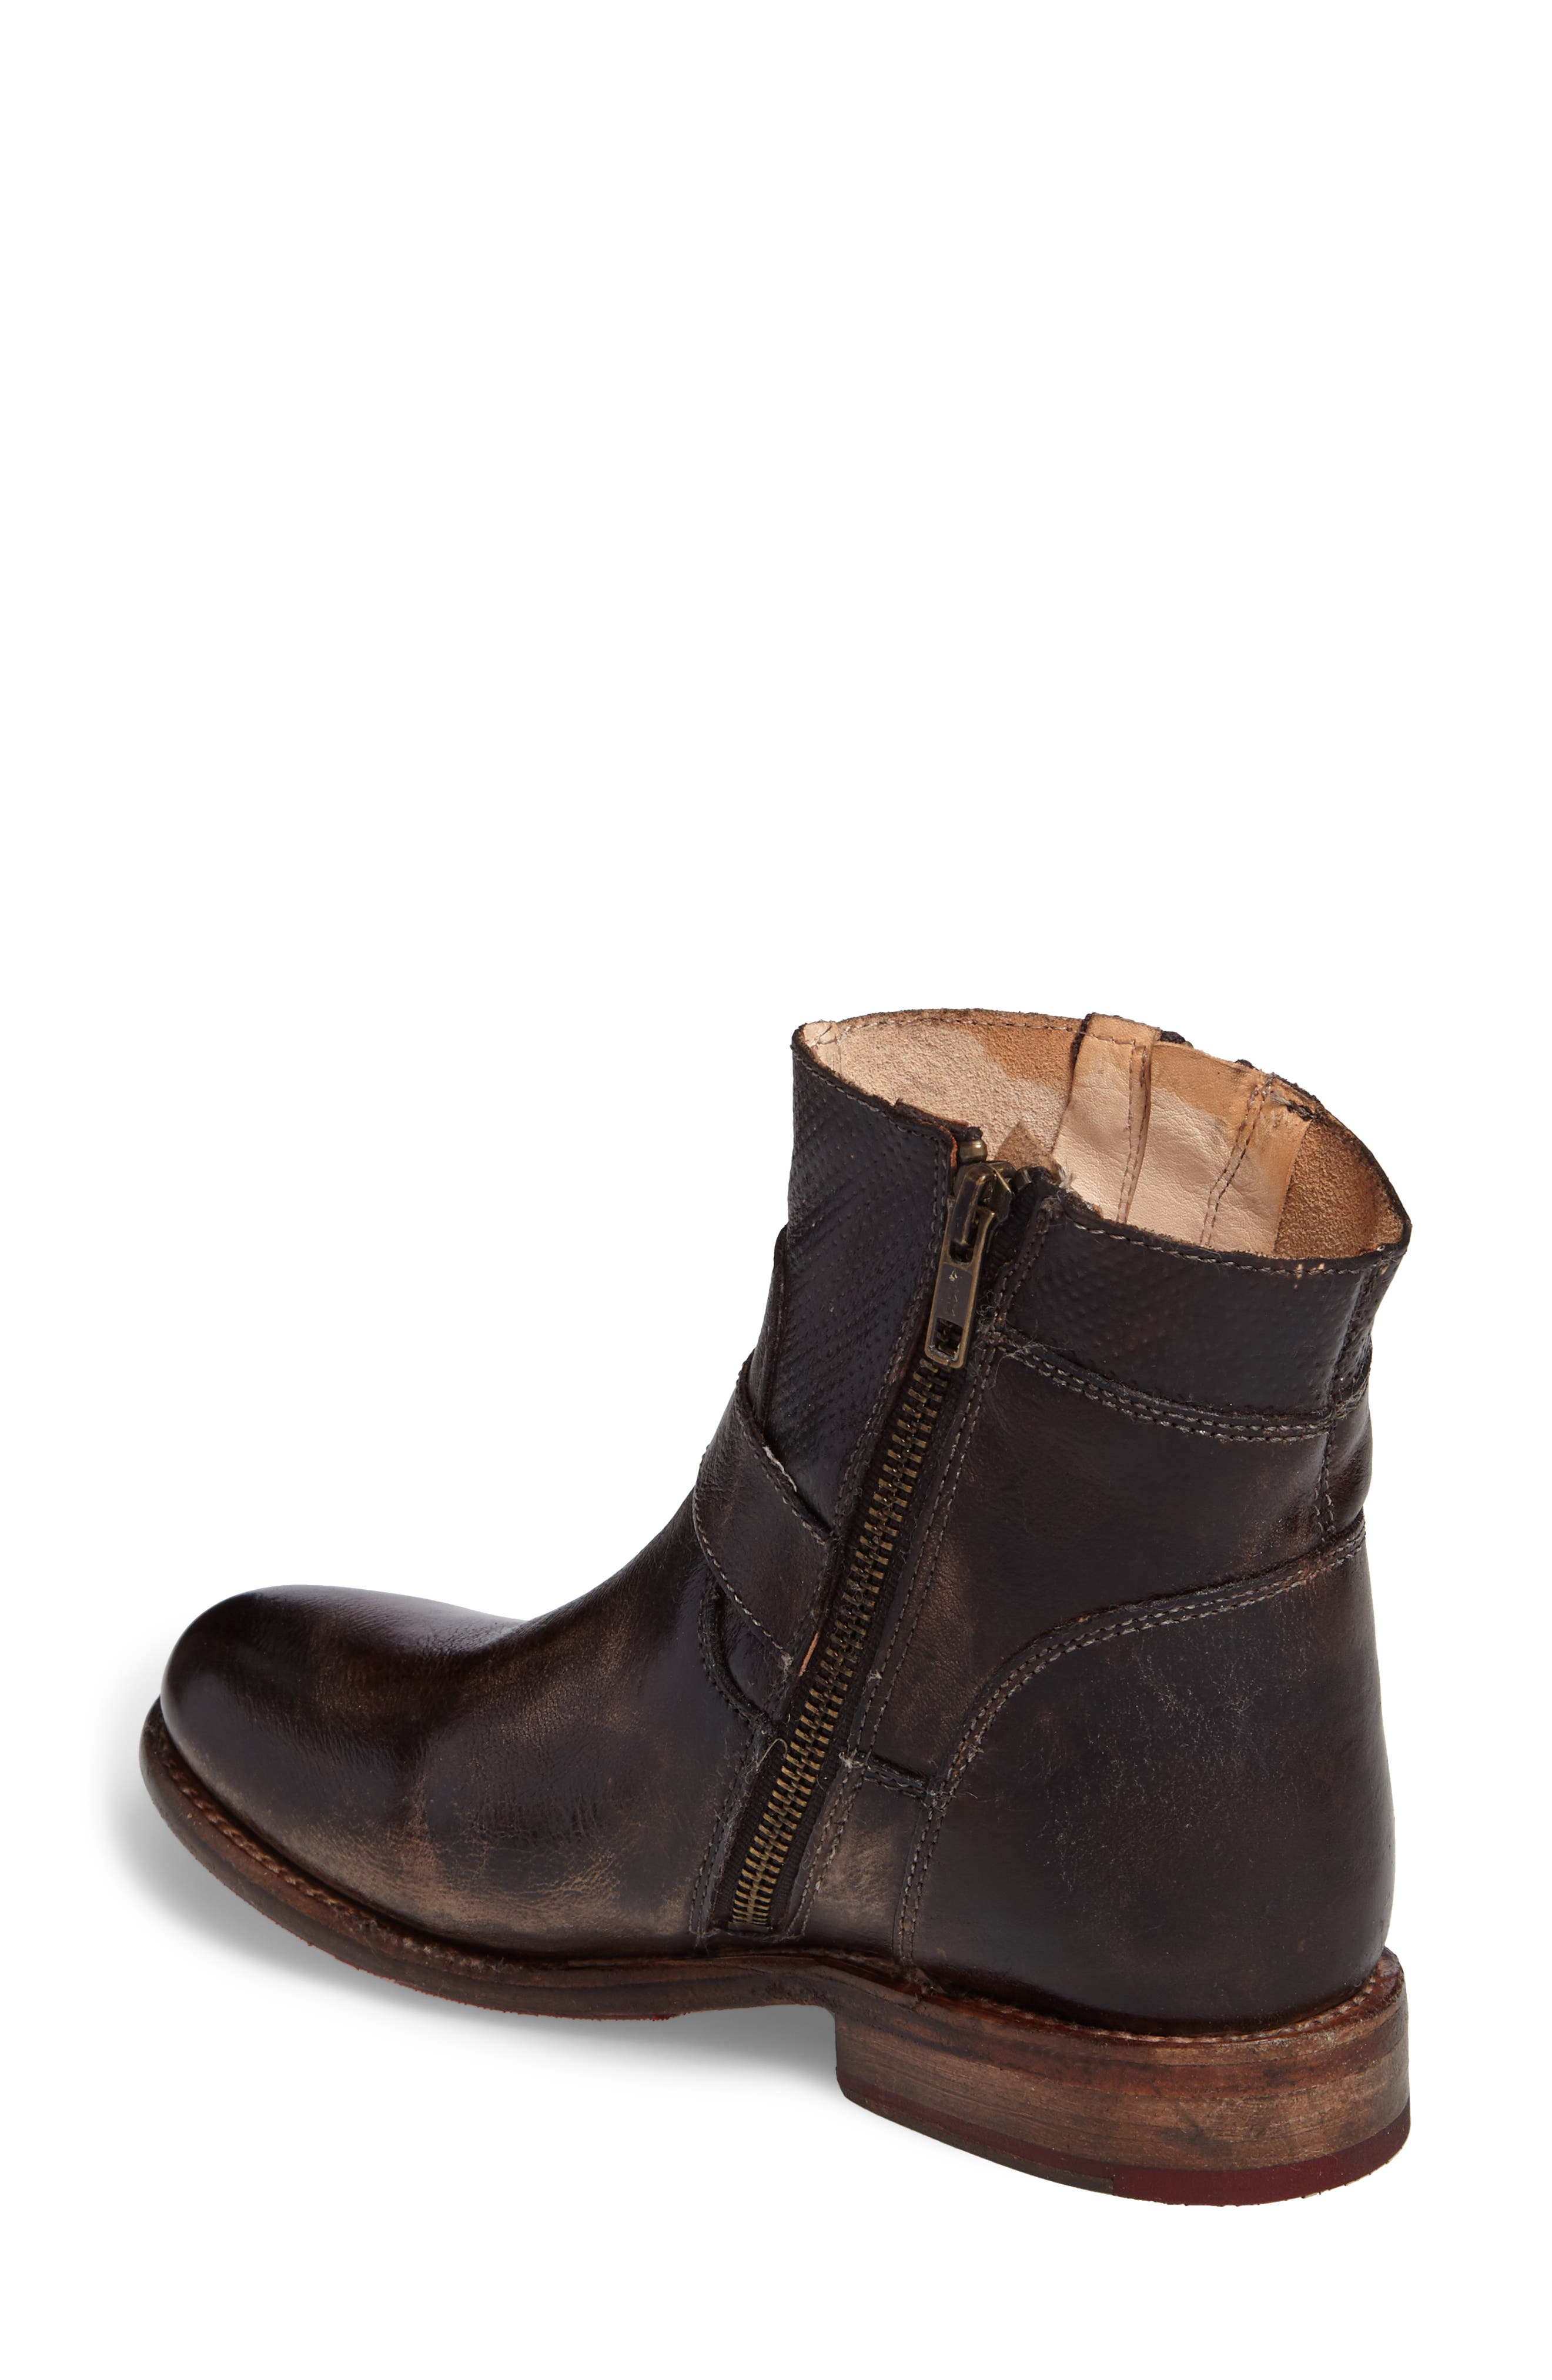 Becca Buckle Boot,                             Alternate thumbnail 5, color,